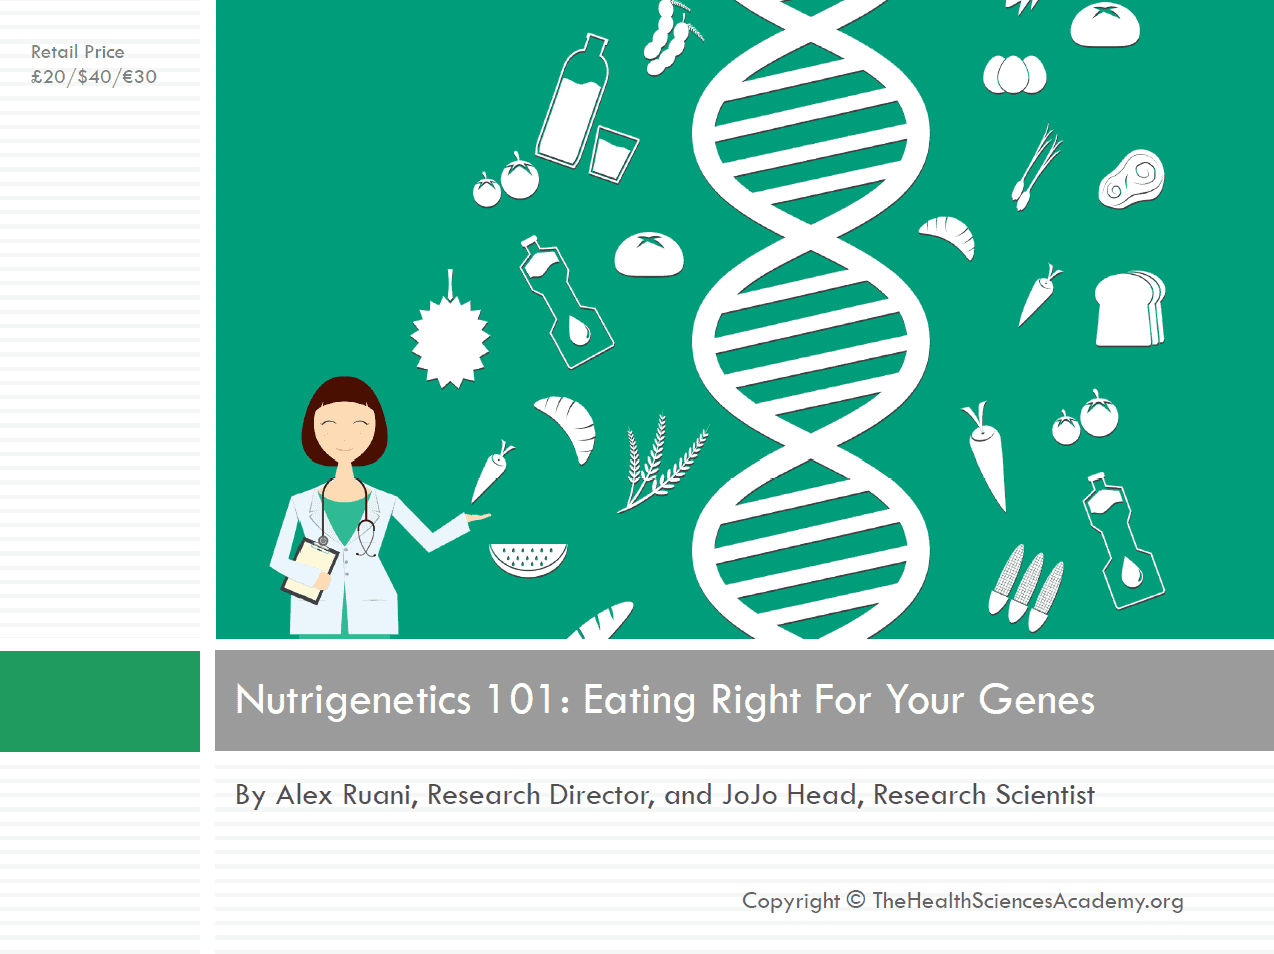 Science-Report-Nutrigenetics-101-Eating-Right-For-Your-Genes-The-Health-Sciences-Academy